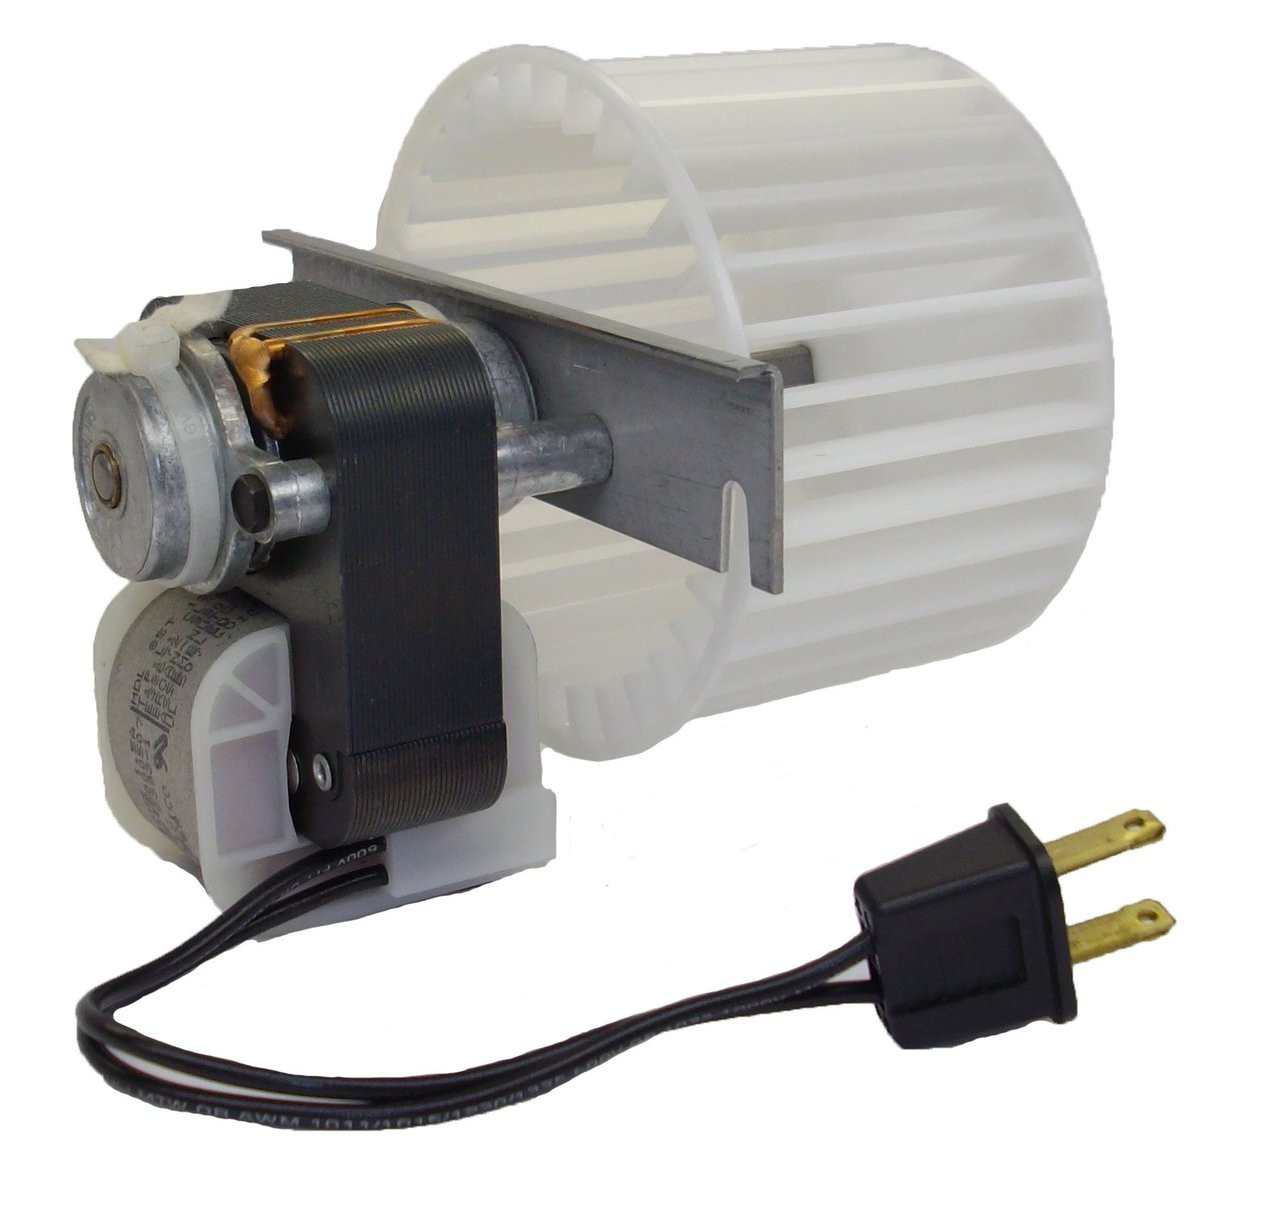 Fan Motor Product : Broan kitchen exhaust fan motors wow